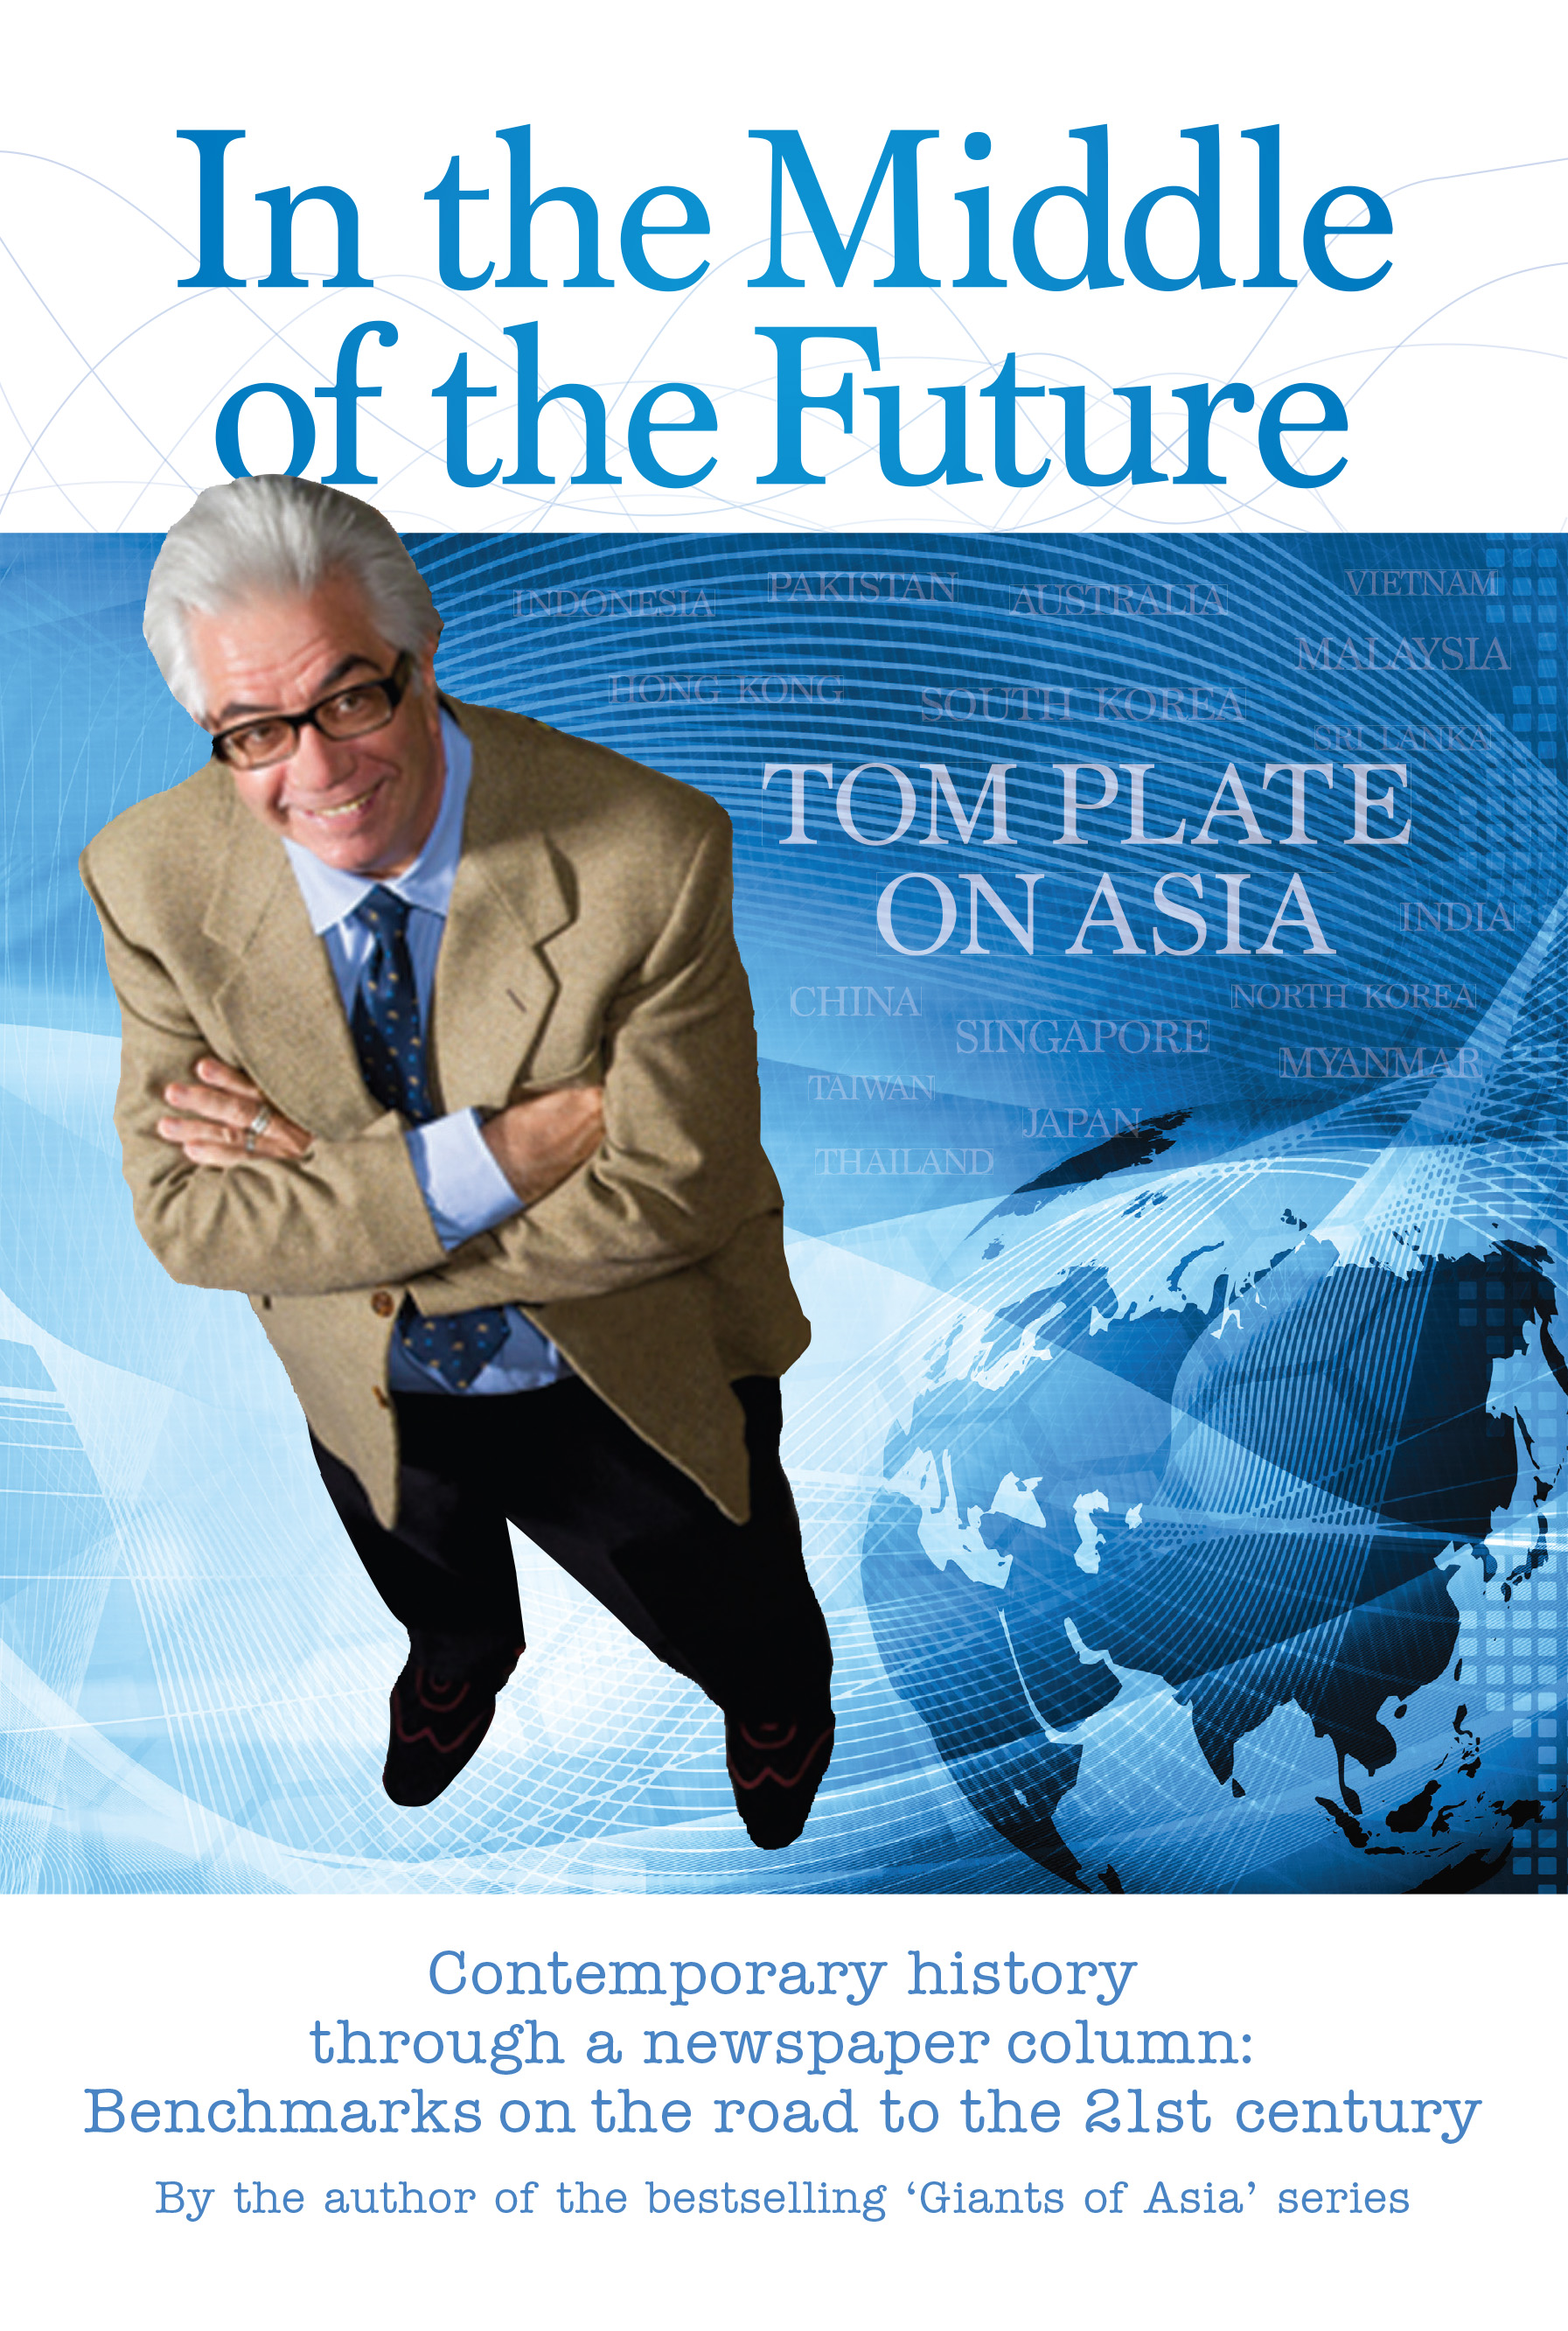 In the Middle of the Future: Tom Plate on Asia